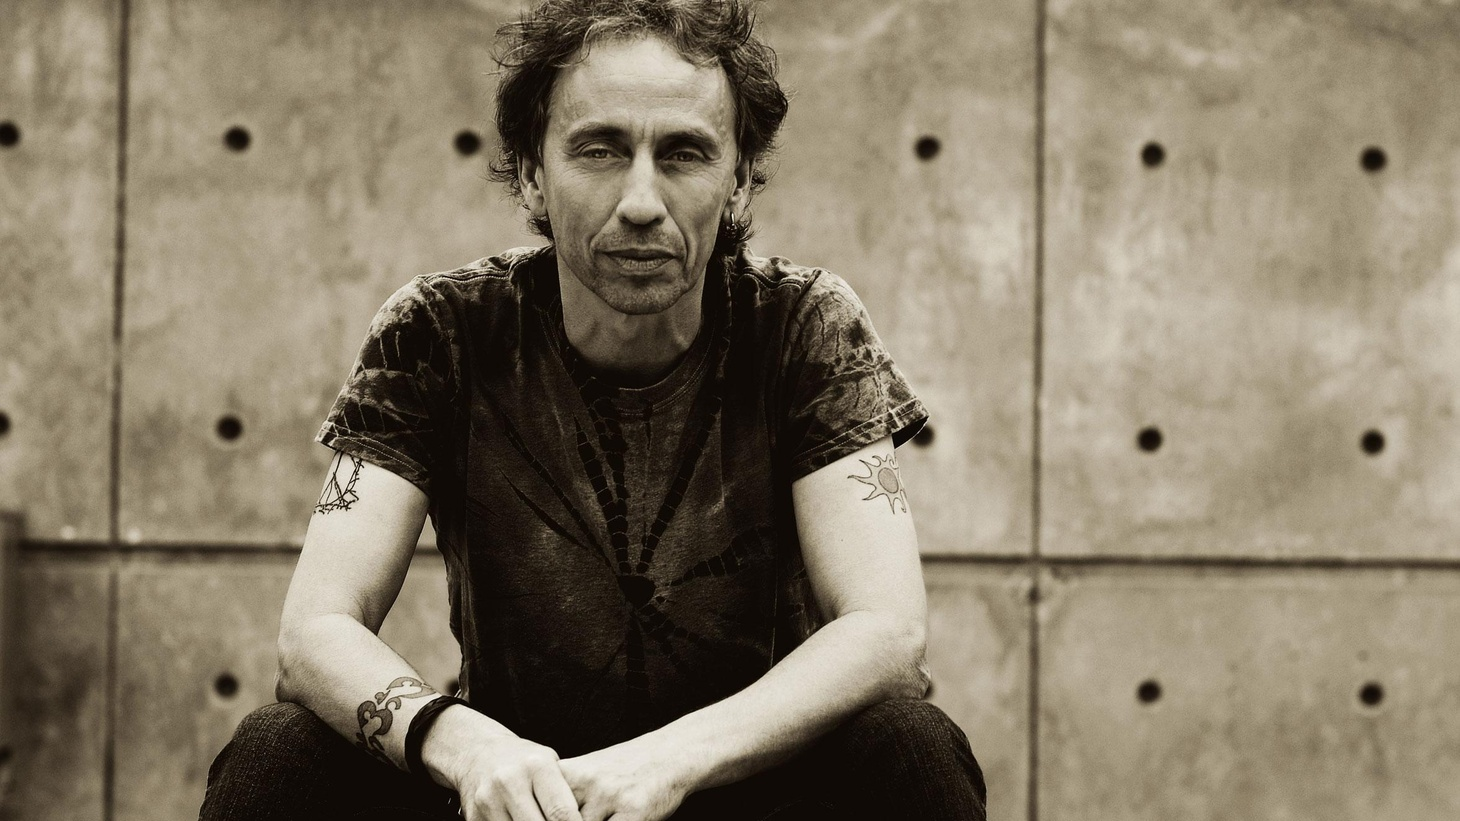 On this edition of Sounds Eclectic, host Nic Harcourt plays new, upcoming and recent releases from Madelaine Peyroux (pay-roo), The Crimea, and the latest from Blue Nile. Plus a live in-studio performance from Patti Smith, all this and much more on Sounds Eclectic.